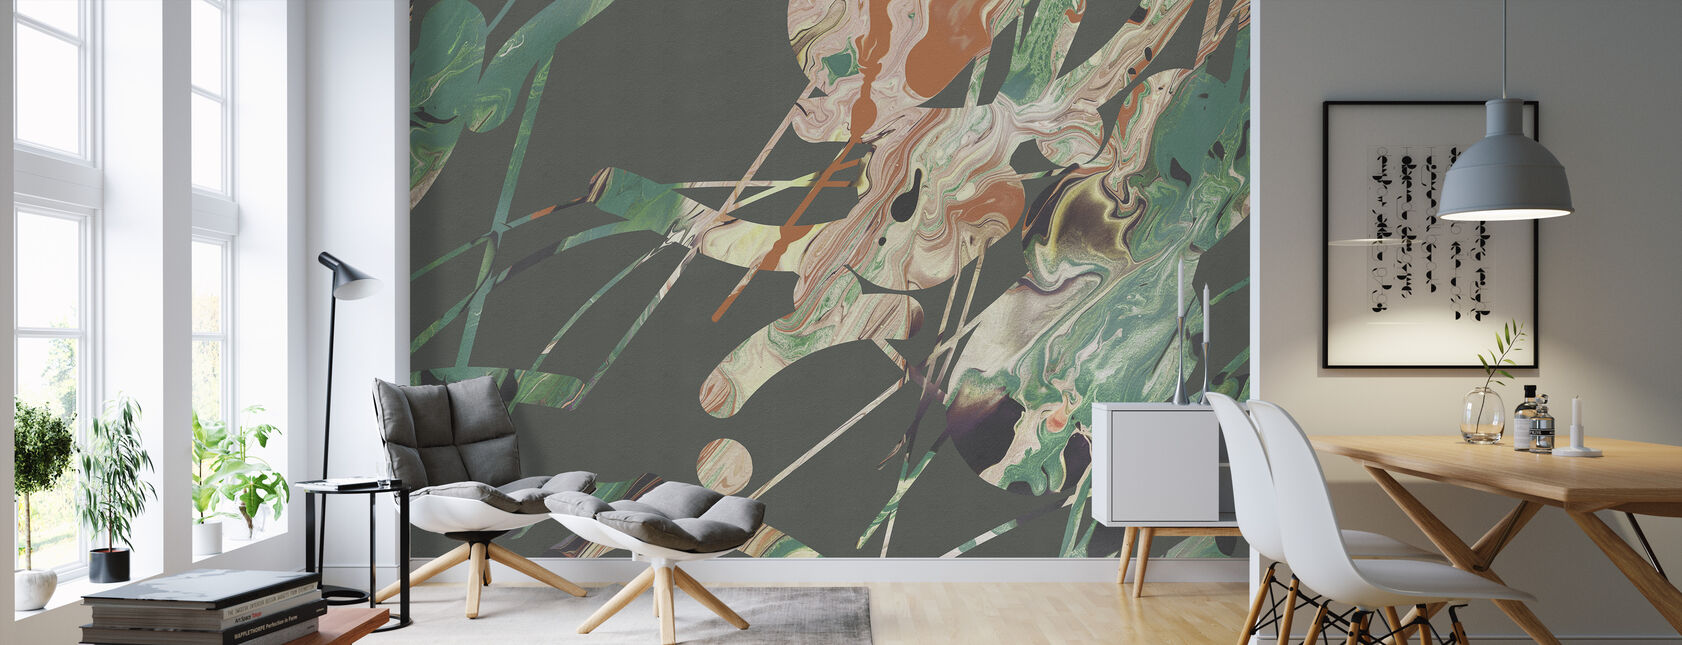 Acrylic Passion - Emerald - Wallpaper - Living Room